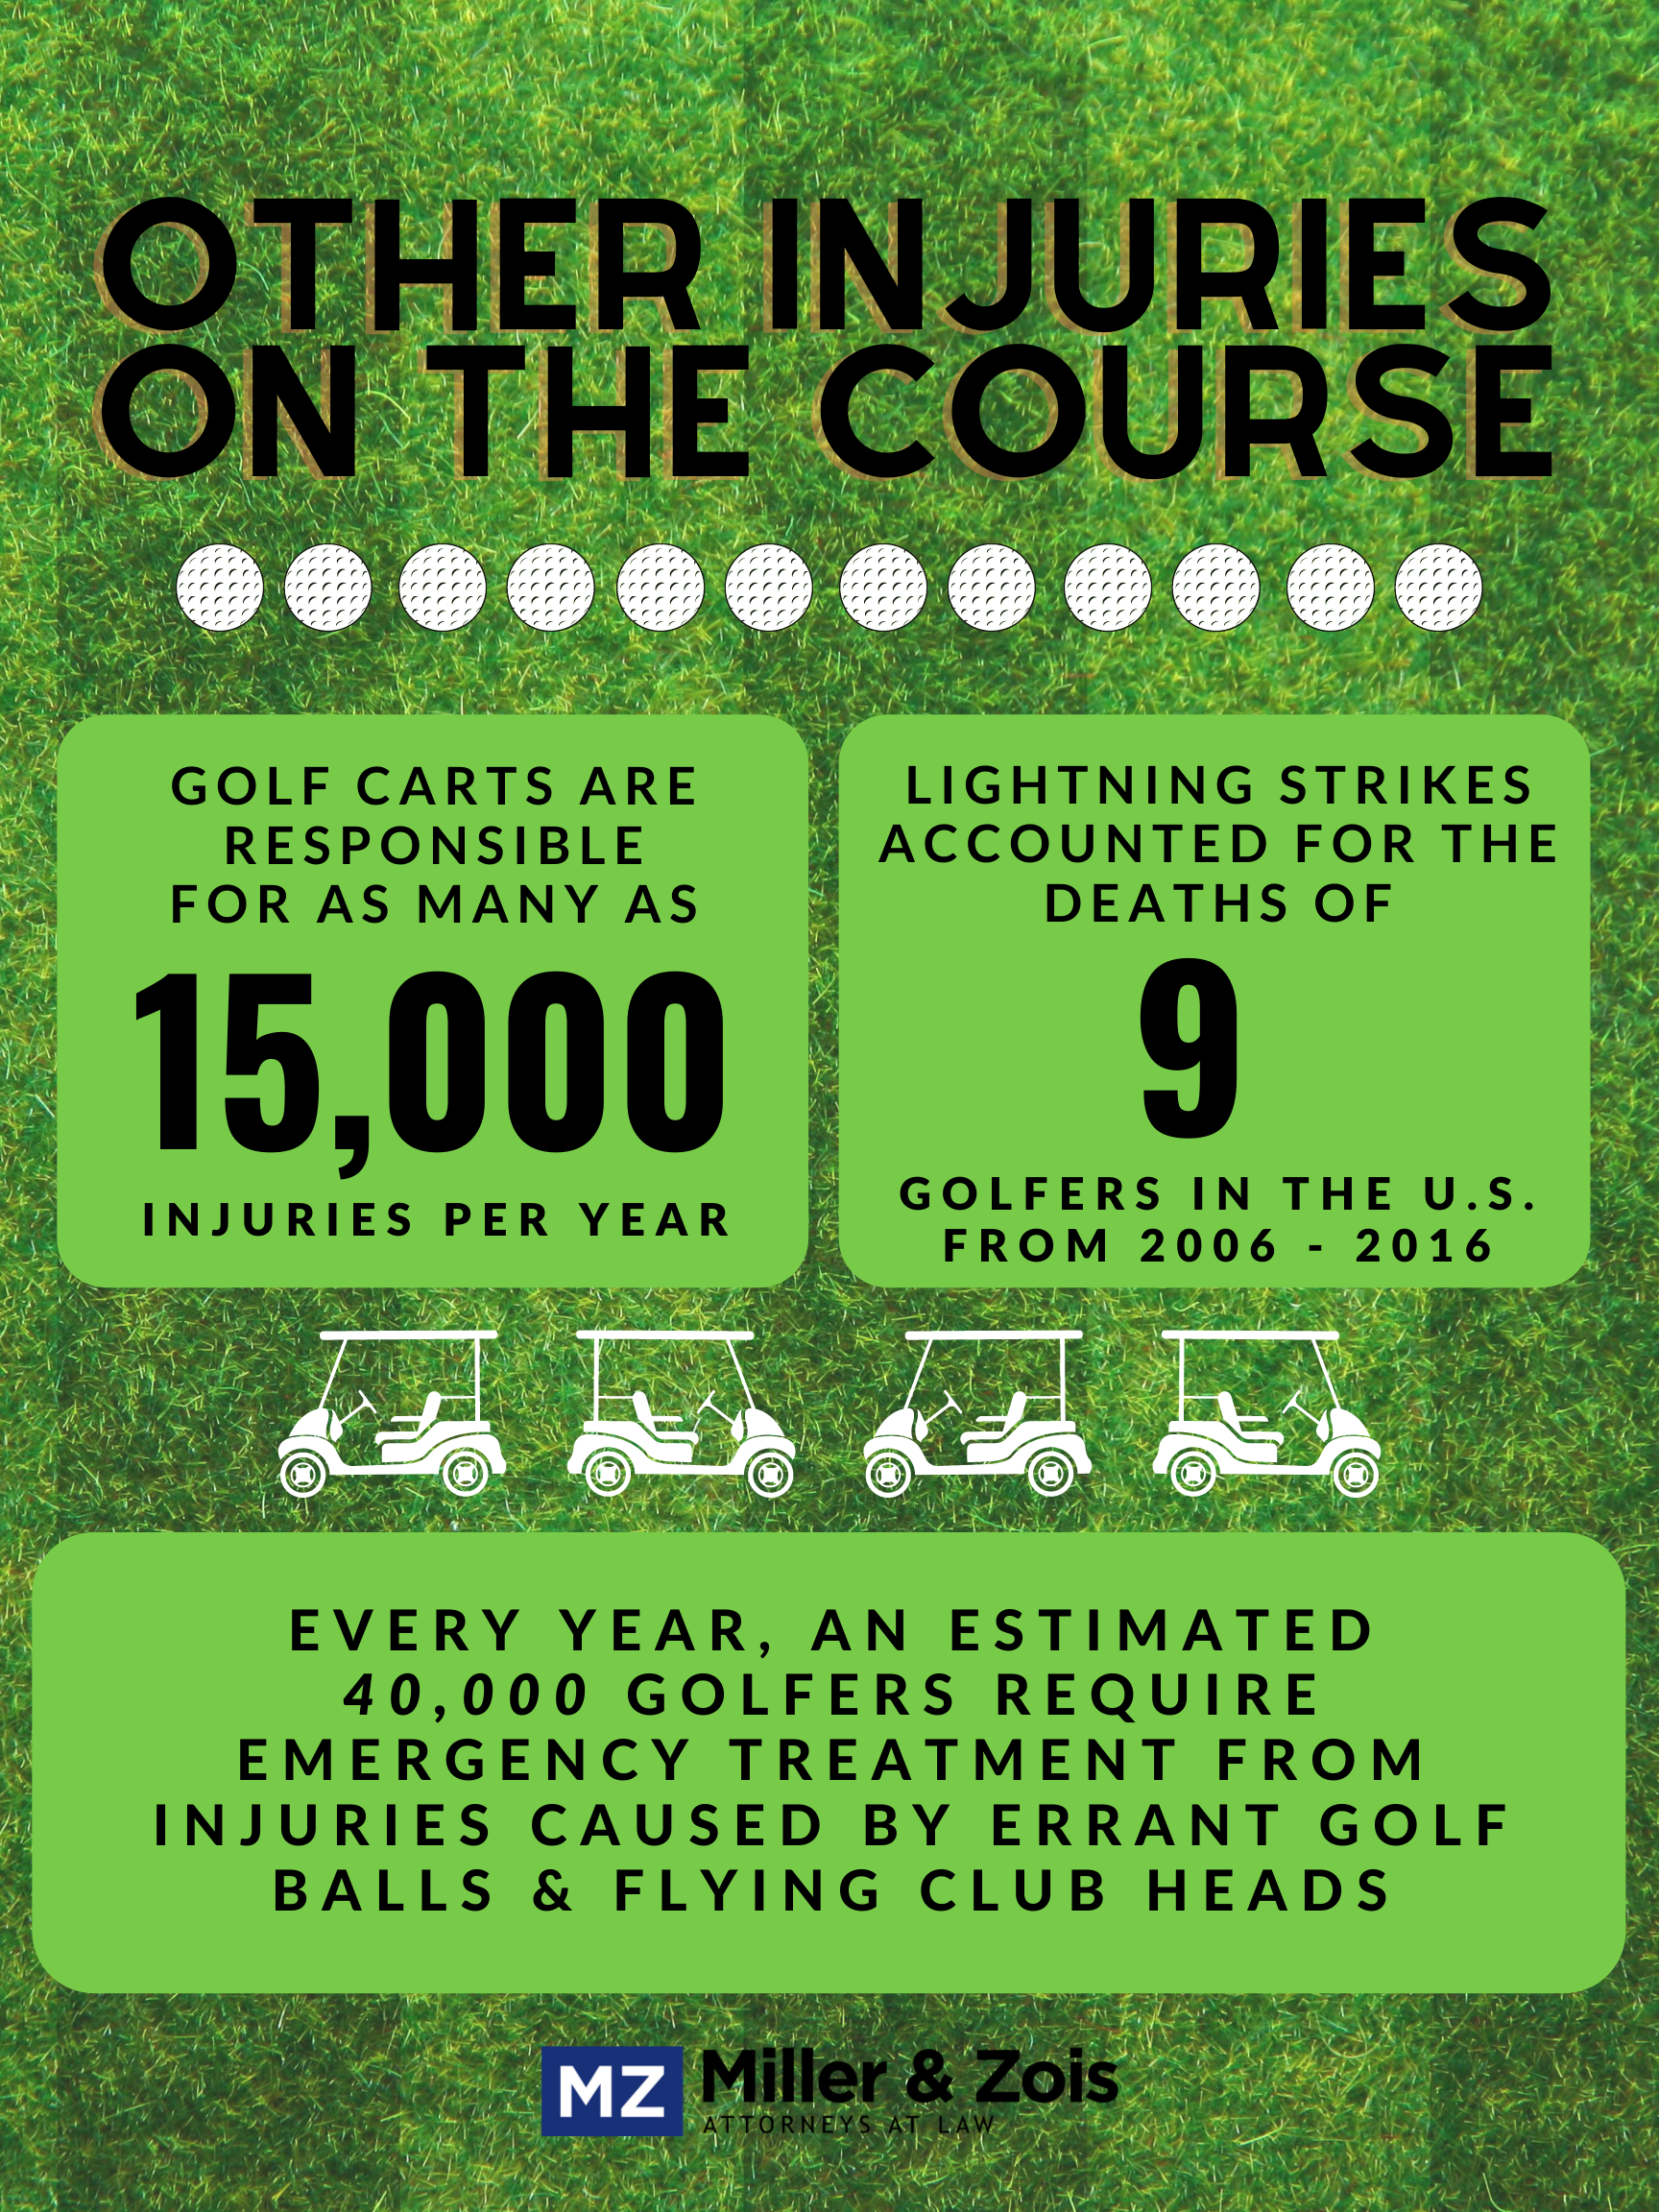 golf course injuries